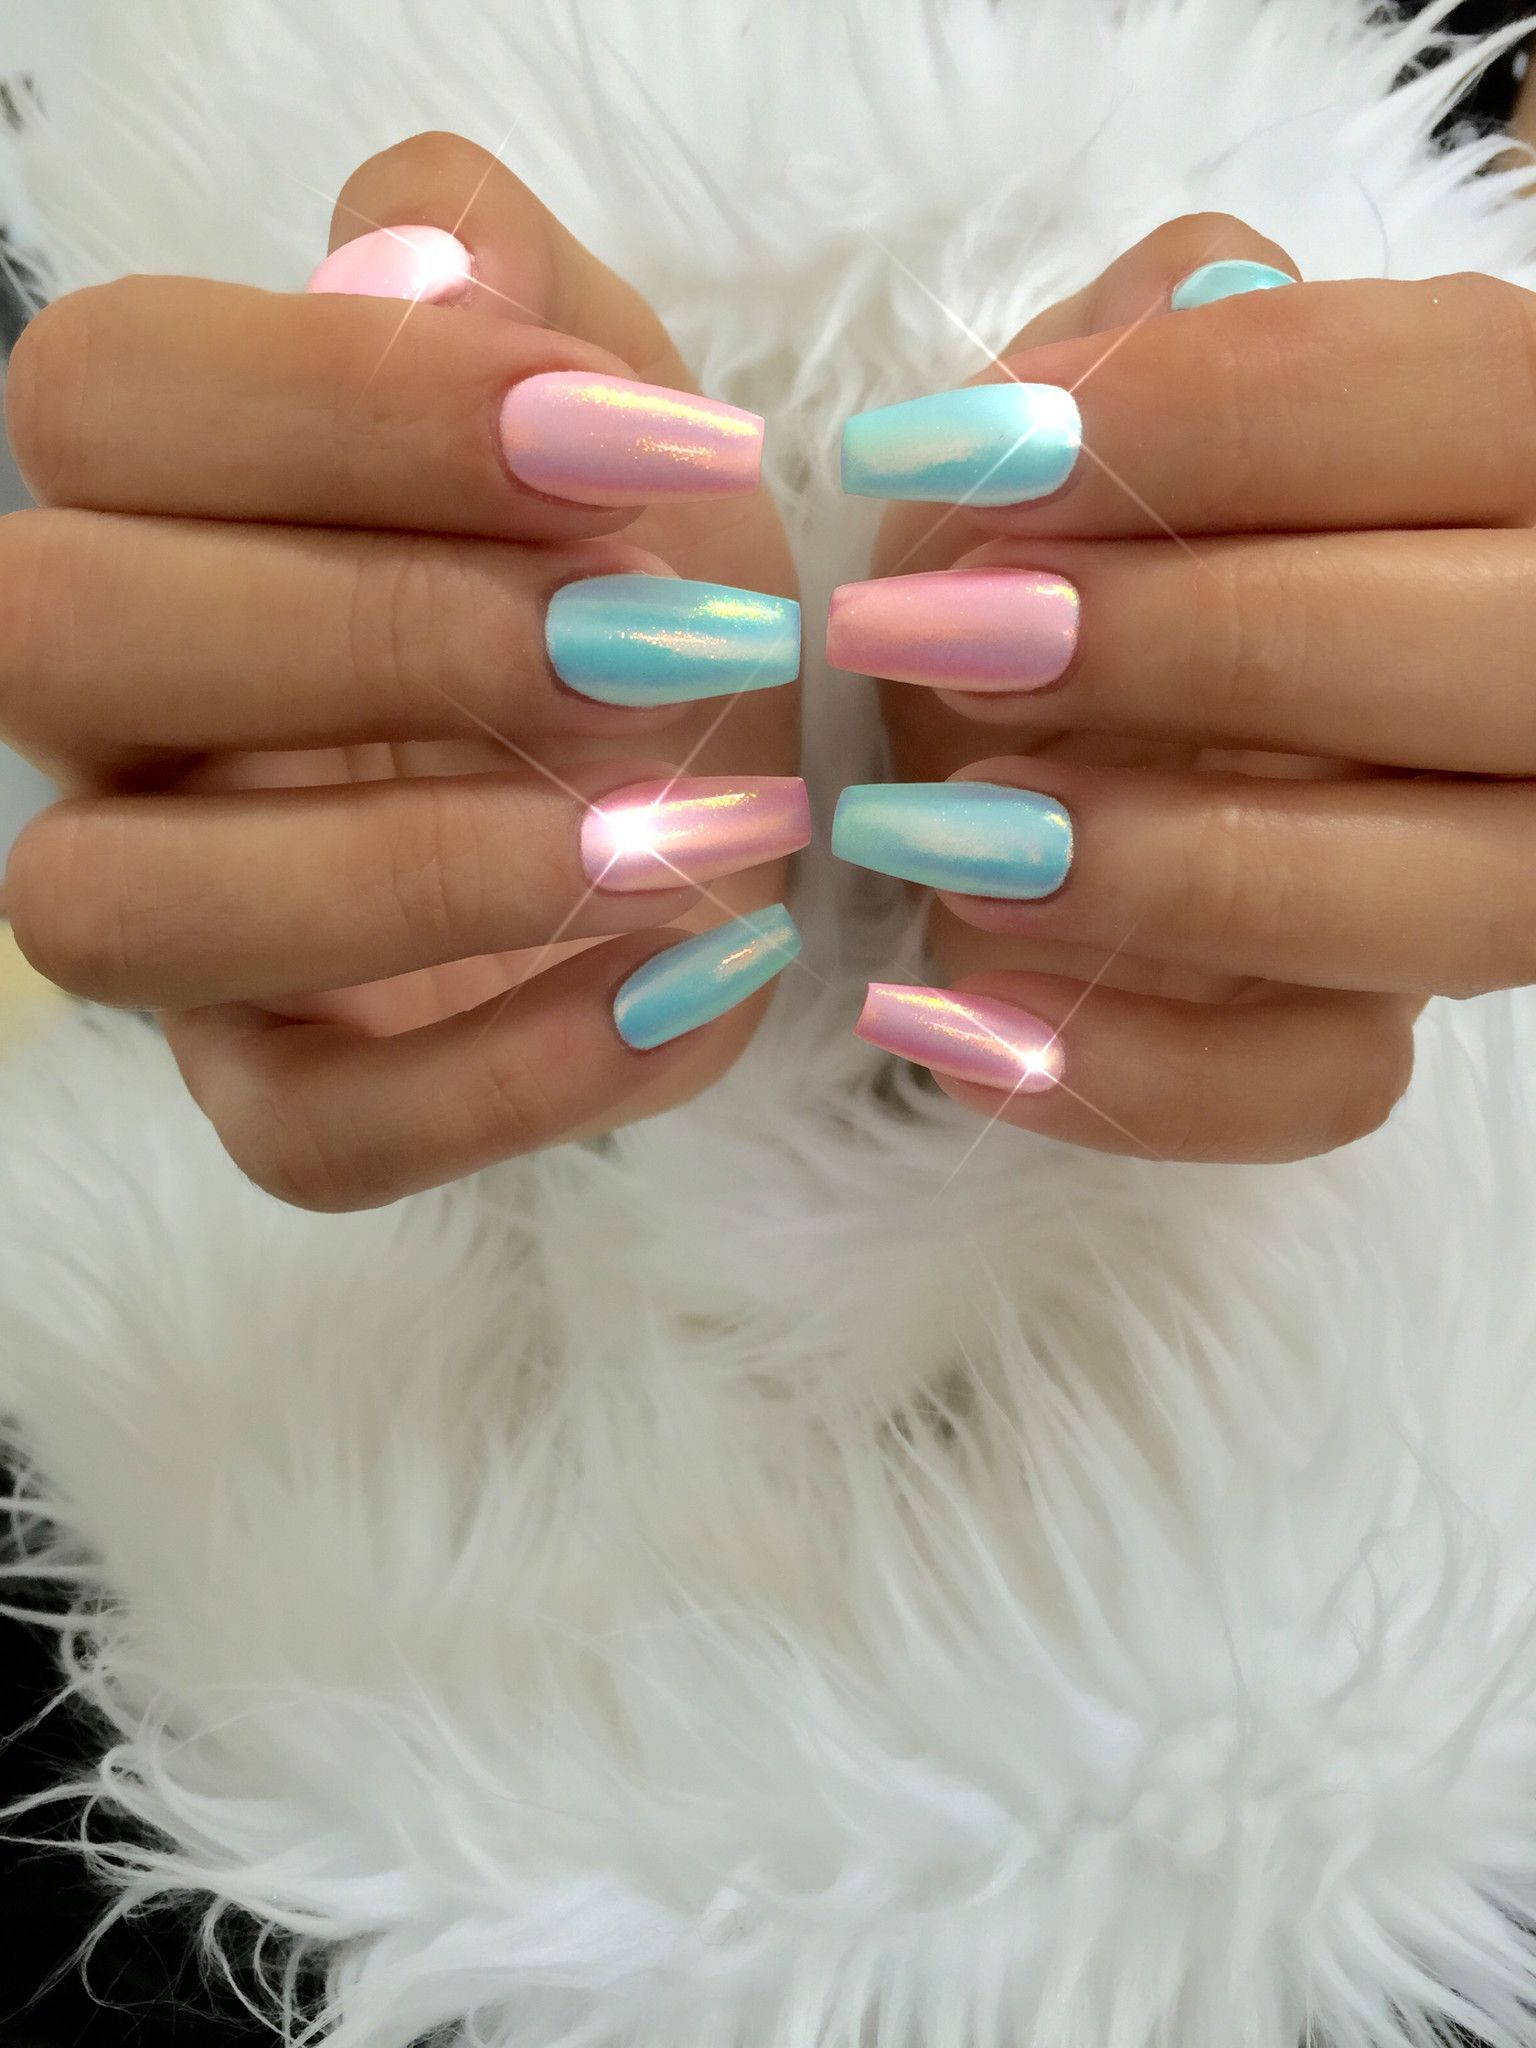 10 Of The Best Nail Art Instagrammers | Diseños de uñas, Arte de ...